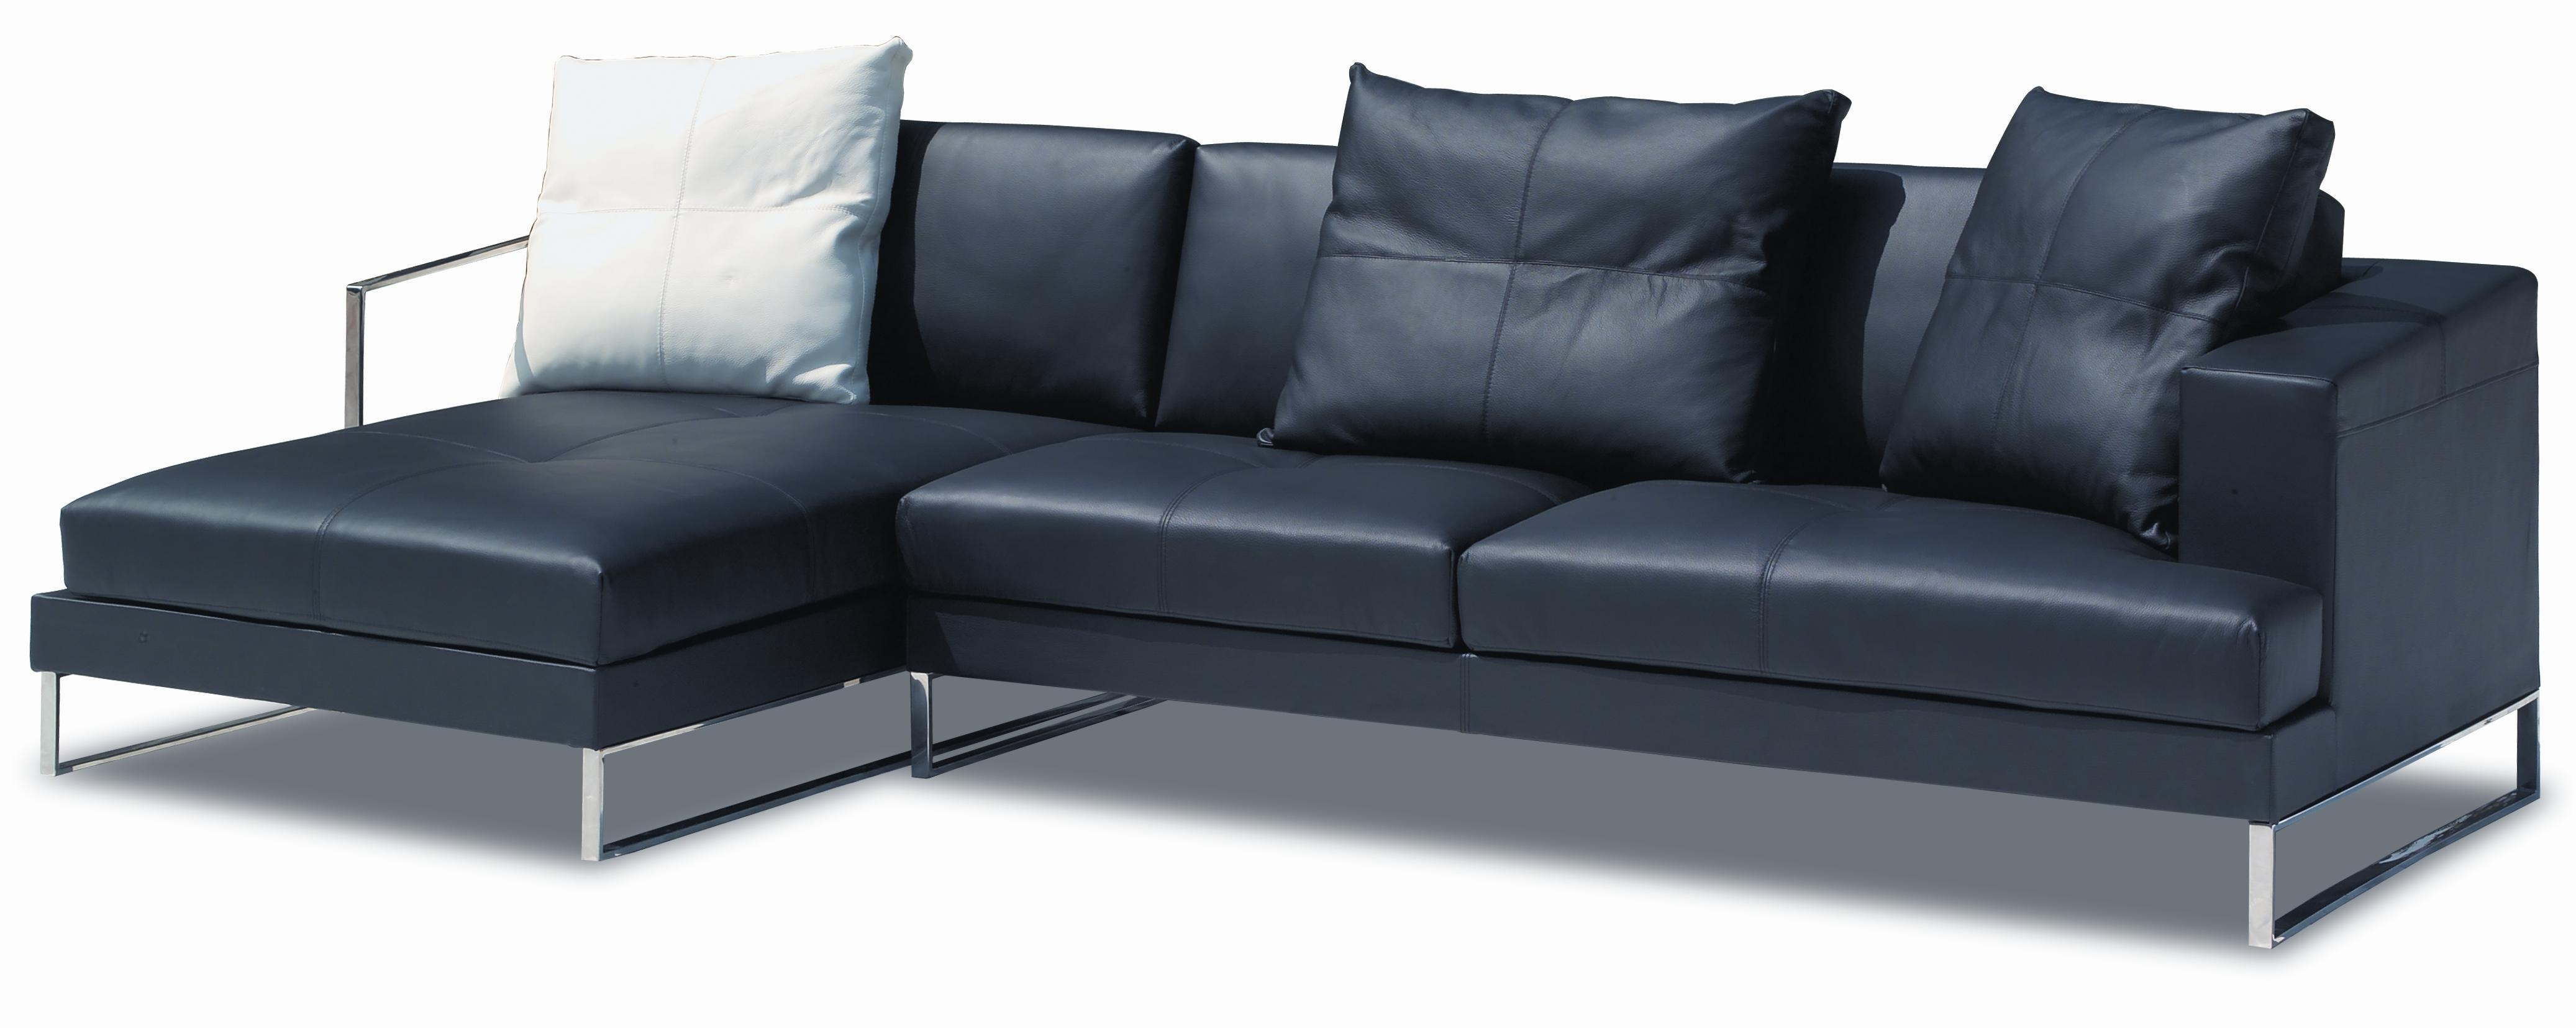 Inspiration Idea Black Leather Sofa With Chaise And Corner Sofas Regarding Black Leather Corner Sofas (View 20 of 20)